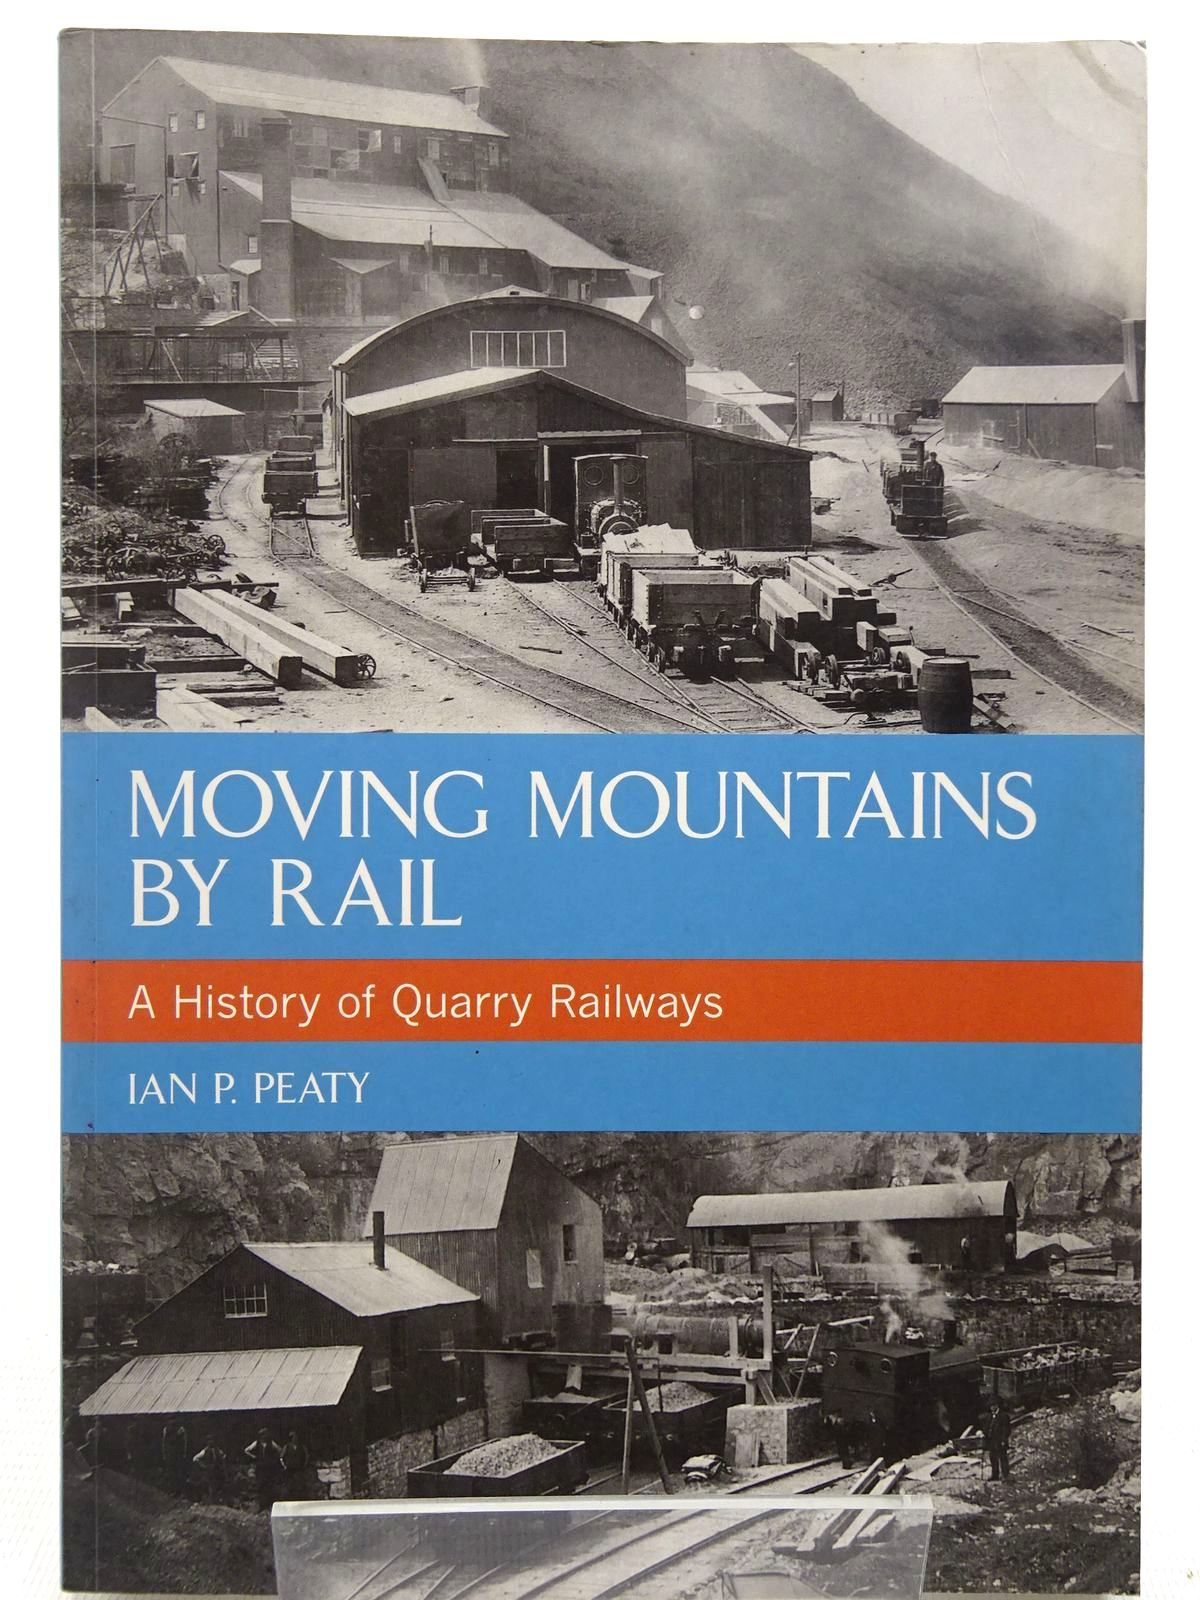 Photo of MOVING MOUNTAINS BY RAIL A HISTORY OF QUARRY RAILWAYS written by Peaty, Ian P. published by Tempus (STOCK CODE: 2128560)  for sale by Stella & Rose's Books